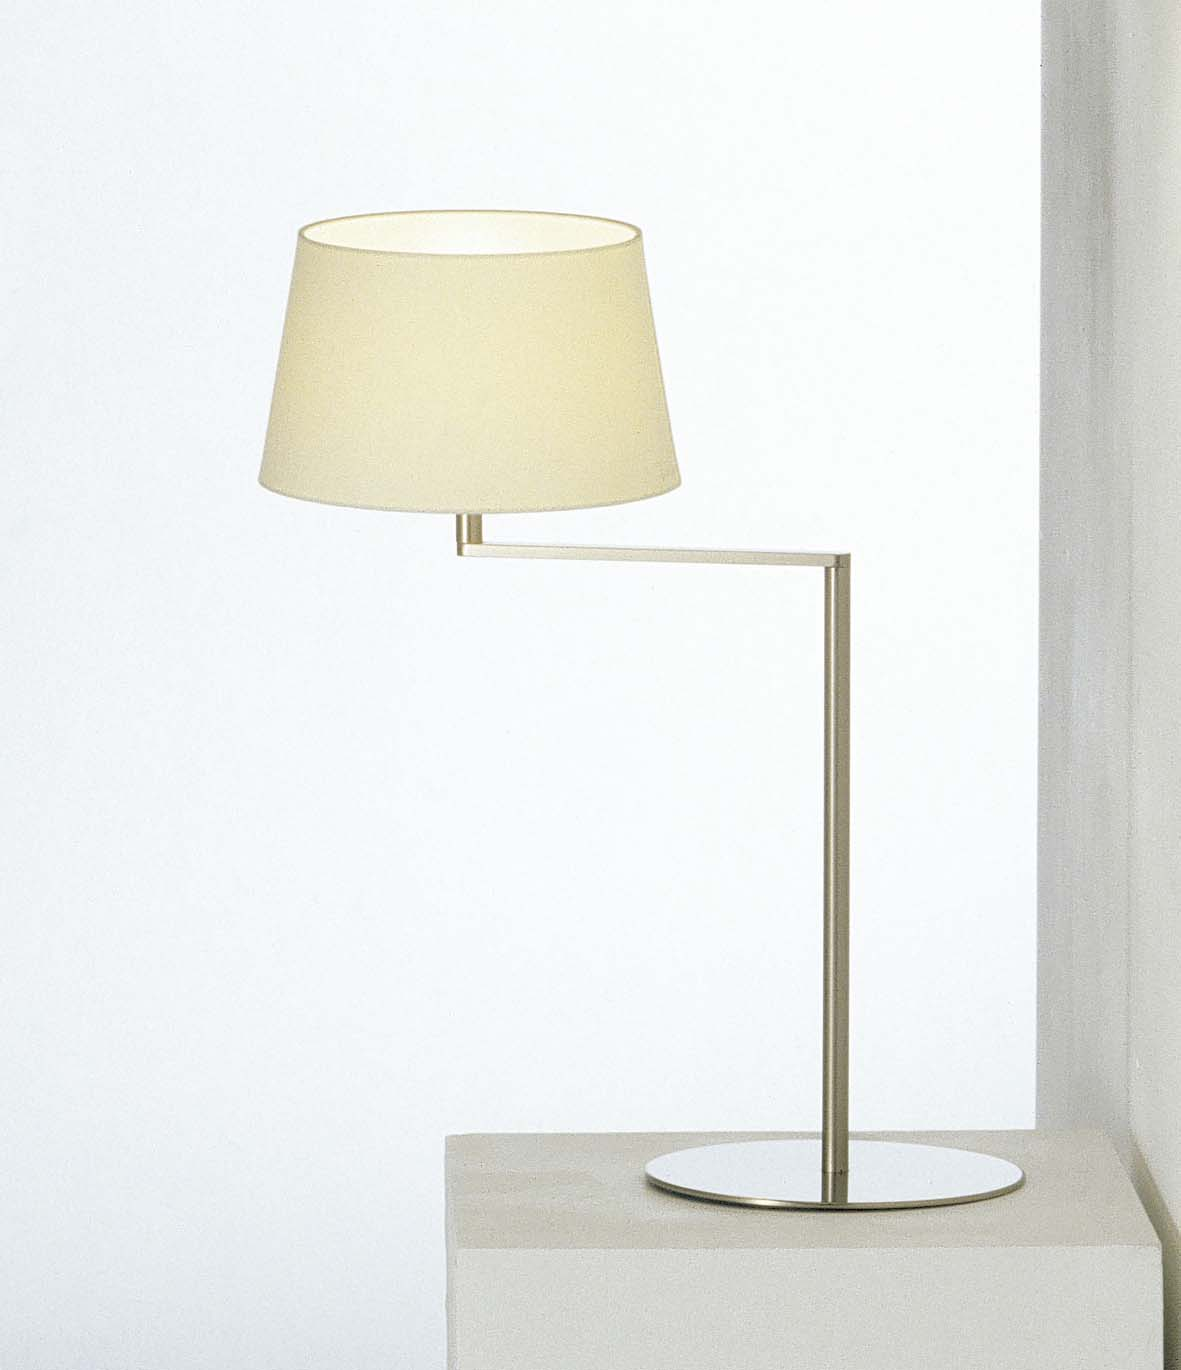 Americana Table Lamp - <p>Enthralled by the idea of enhancing Hansen's remarkable geometry, Milá's Americana series is also based on a swing arm, although here the arm is a single section with a right-angled bend. Accordingly, the head of the shaft becomes the swivel that enables the shades horizontal rotation, reducing the lever effect. The arm can be moved towards you or away from you without shifting the large metal base, evoking the swing motion.</p>  | Matter of Stuff